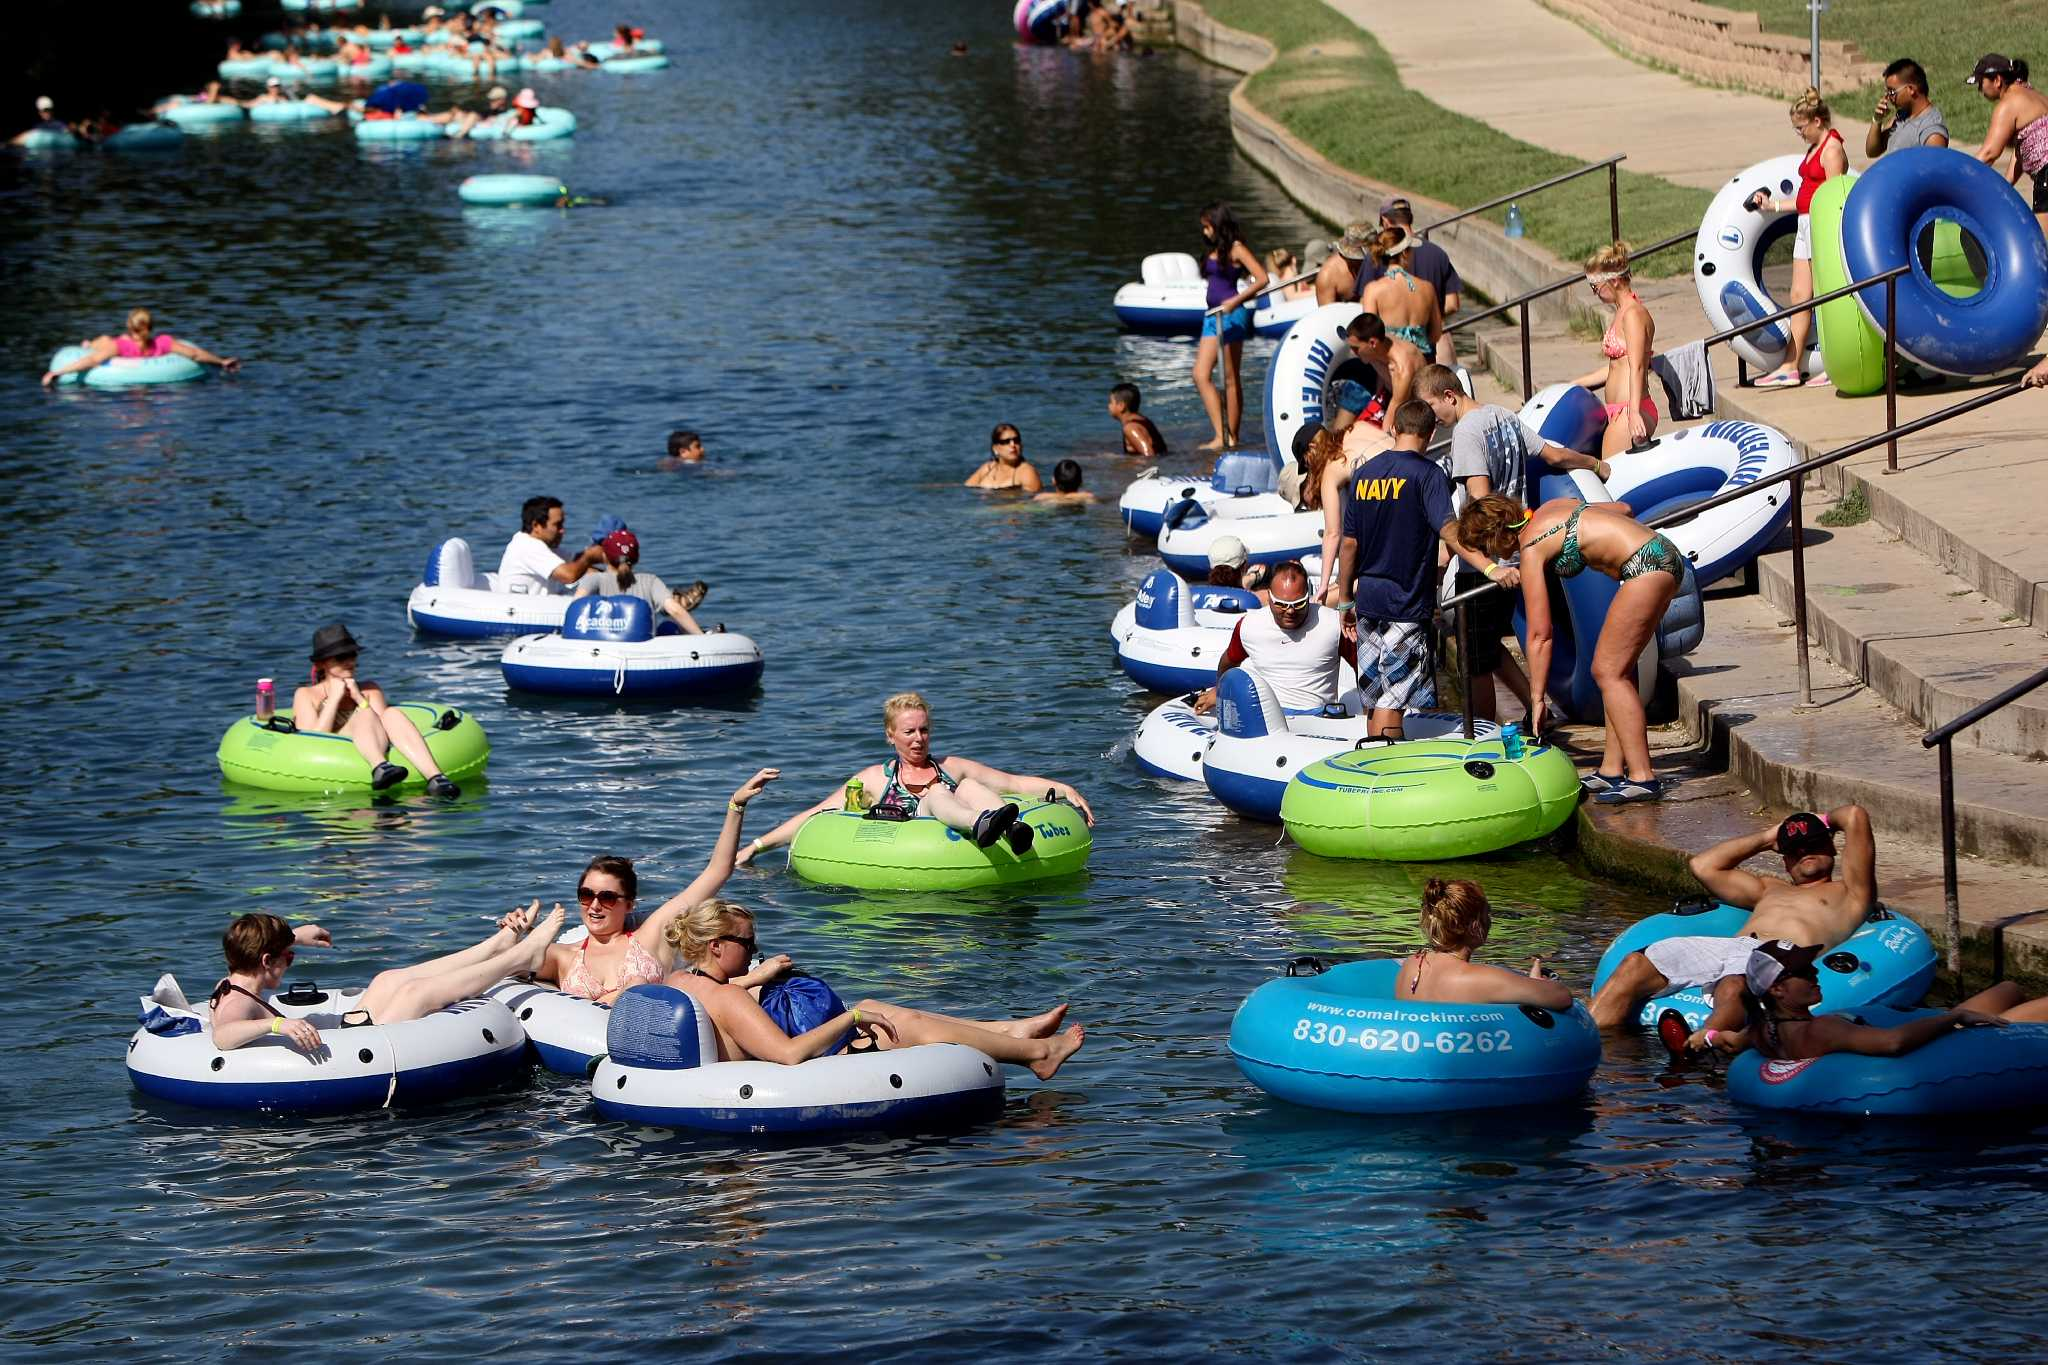 Smaller Tubing Crowds Seen On Rivers San Antonio Express